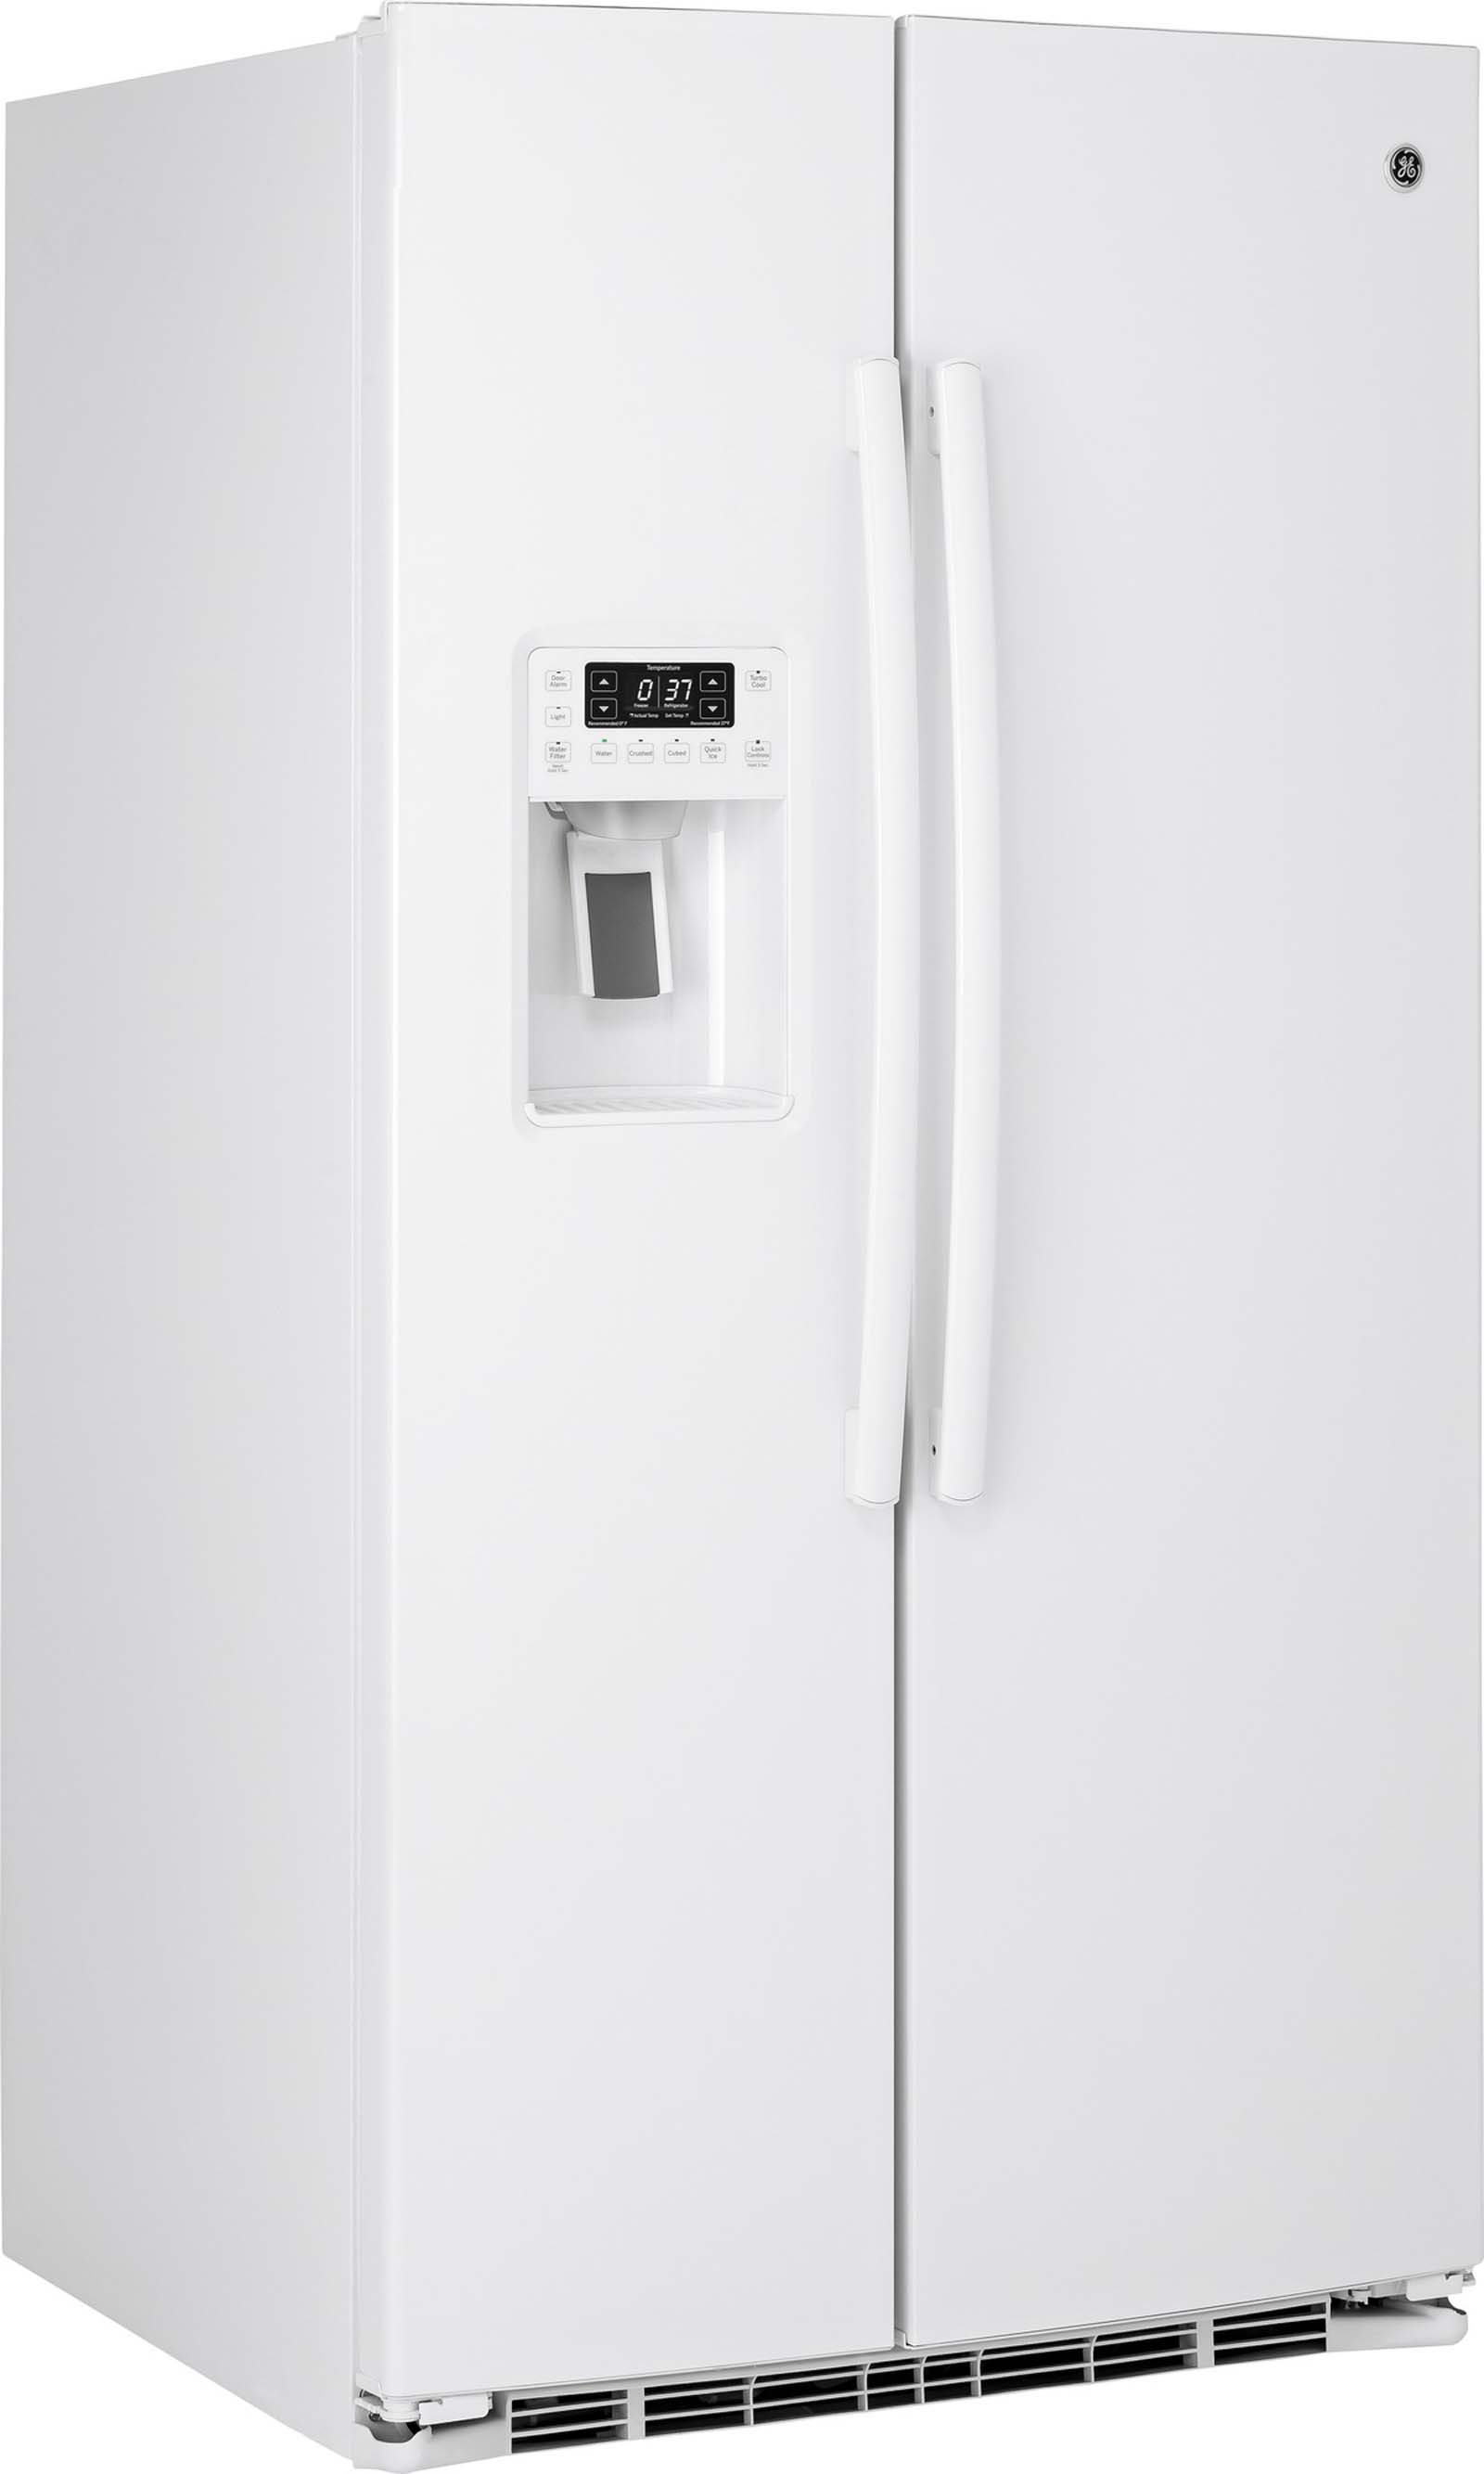 GE Profile 25 cu. ft. Side-by-Side Refrigerator - White